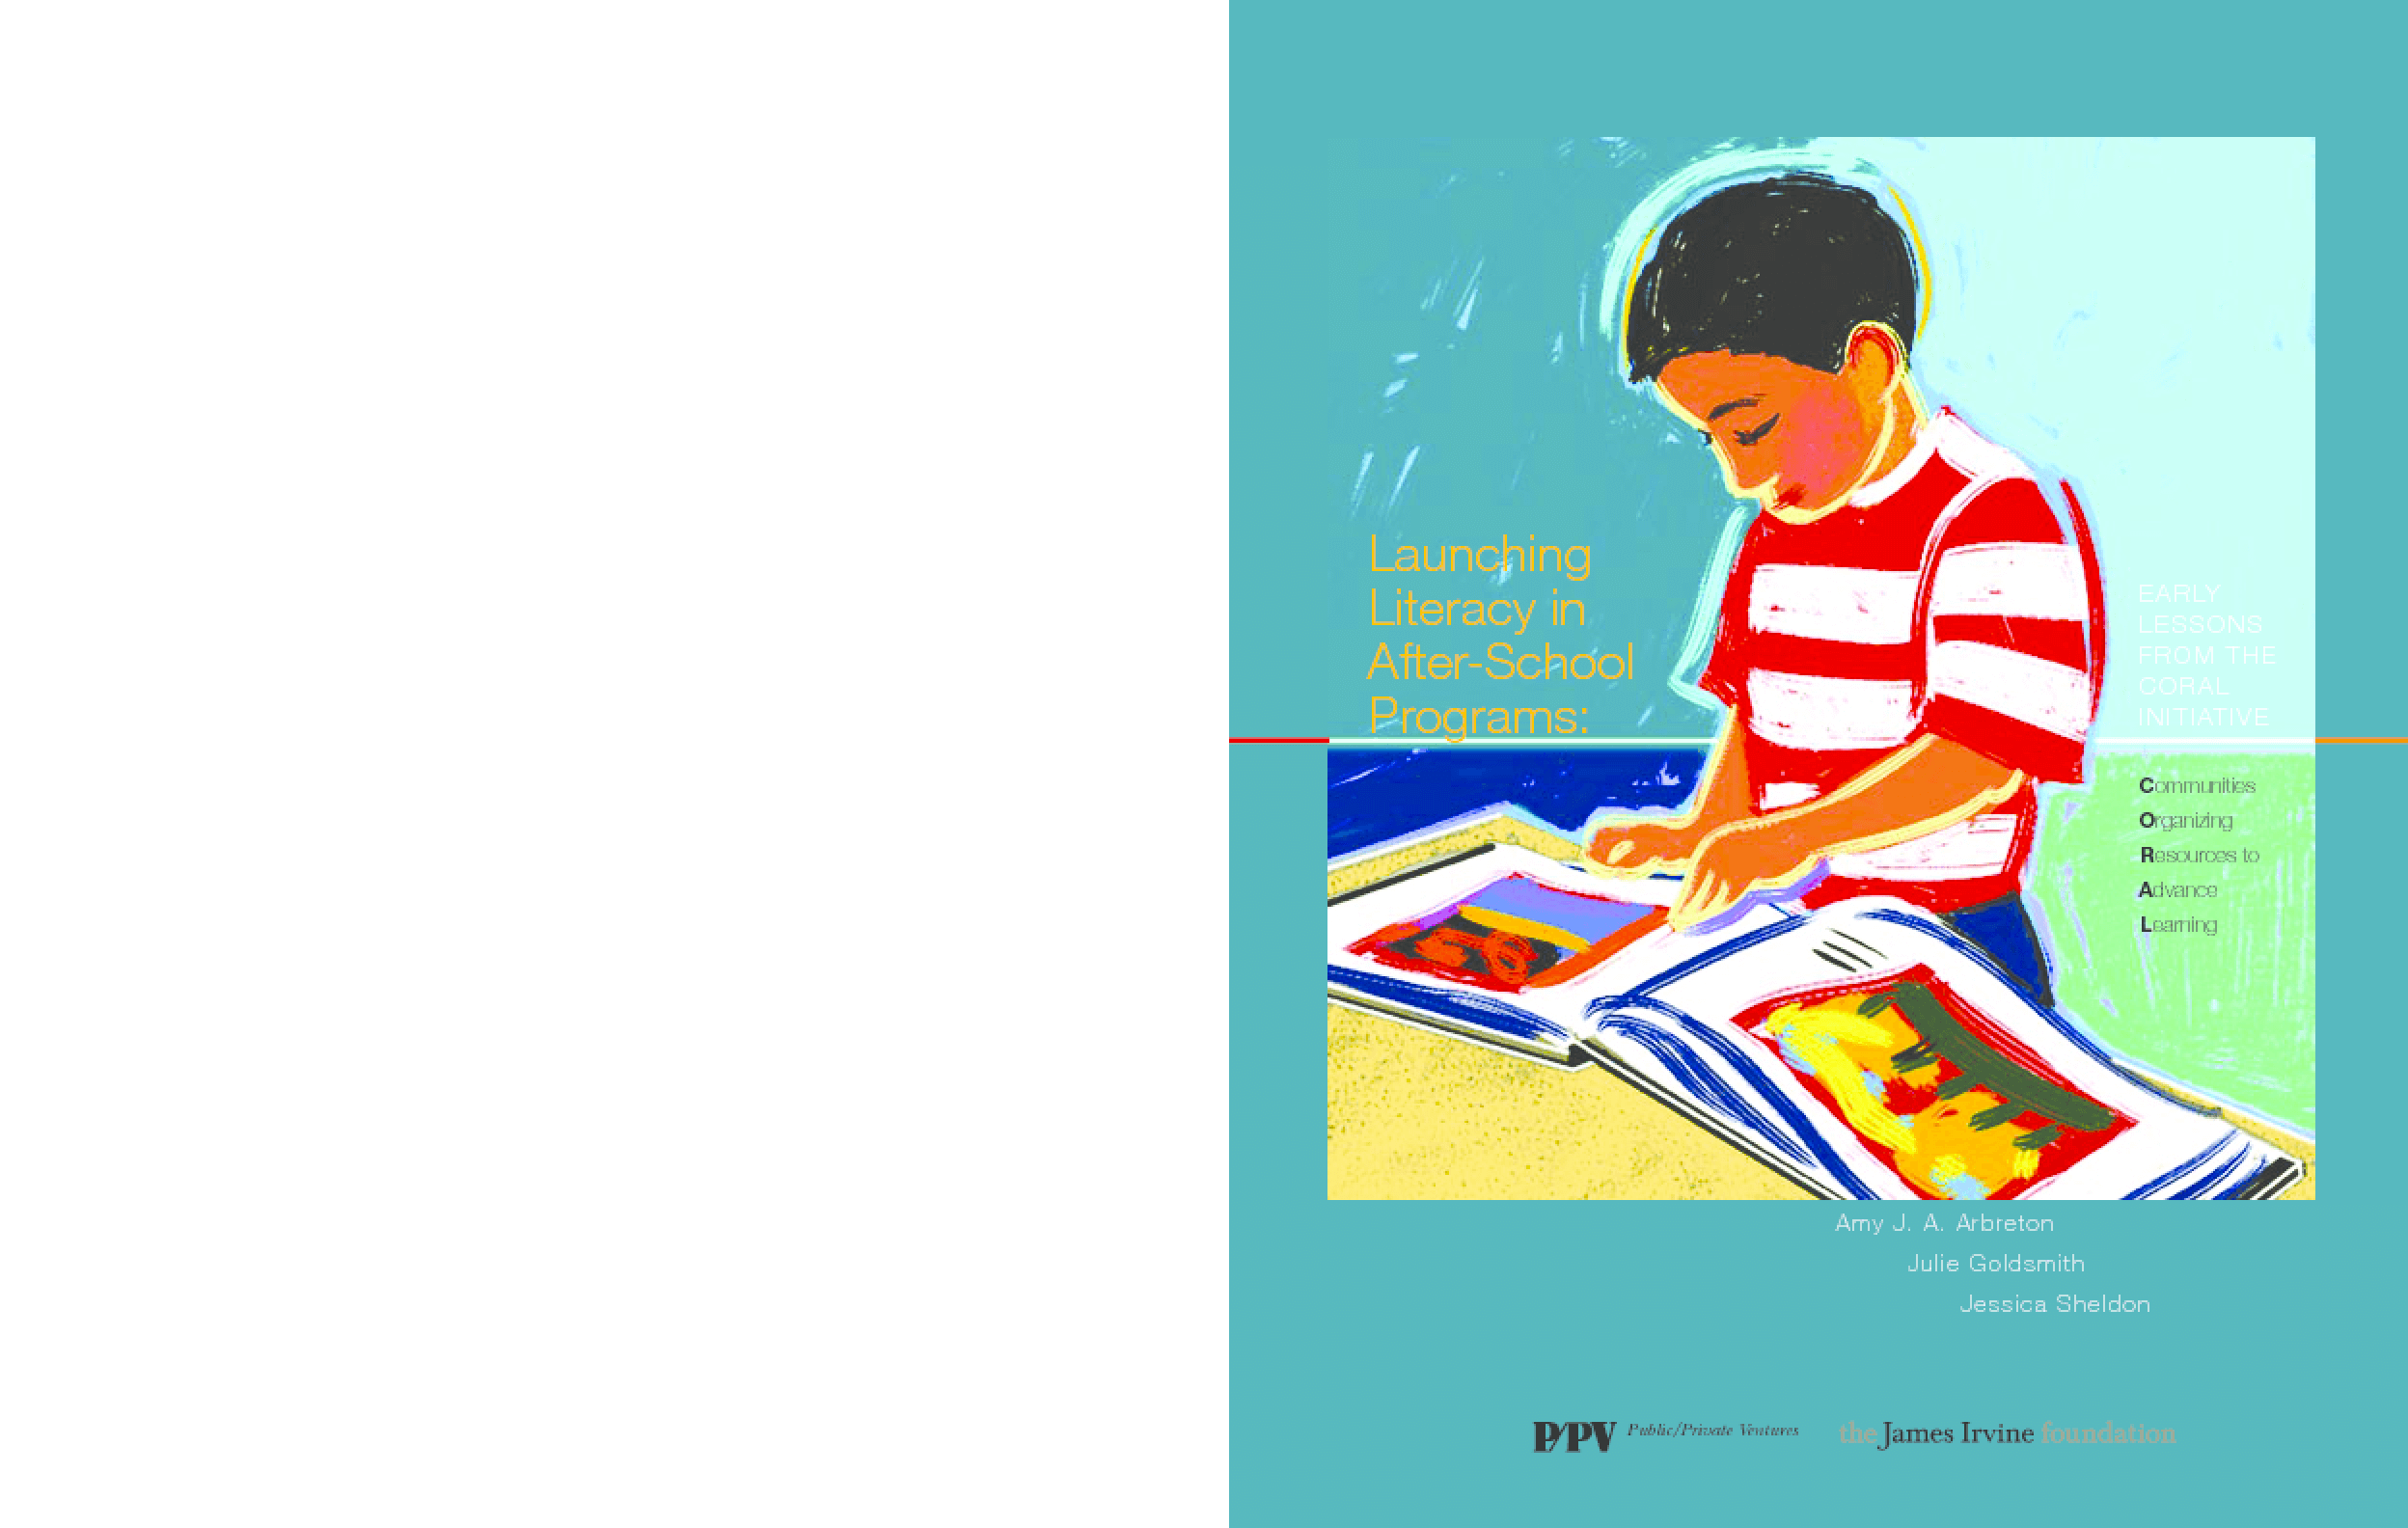 Launching Literacy in After-School Programs: Early Lessons from the CORAL Initiative